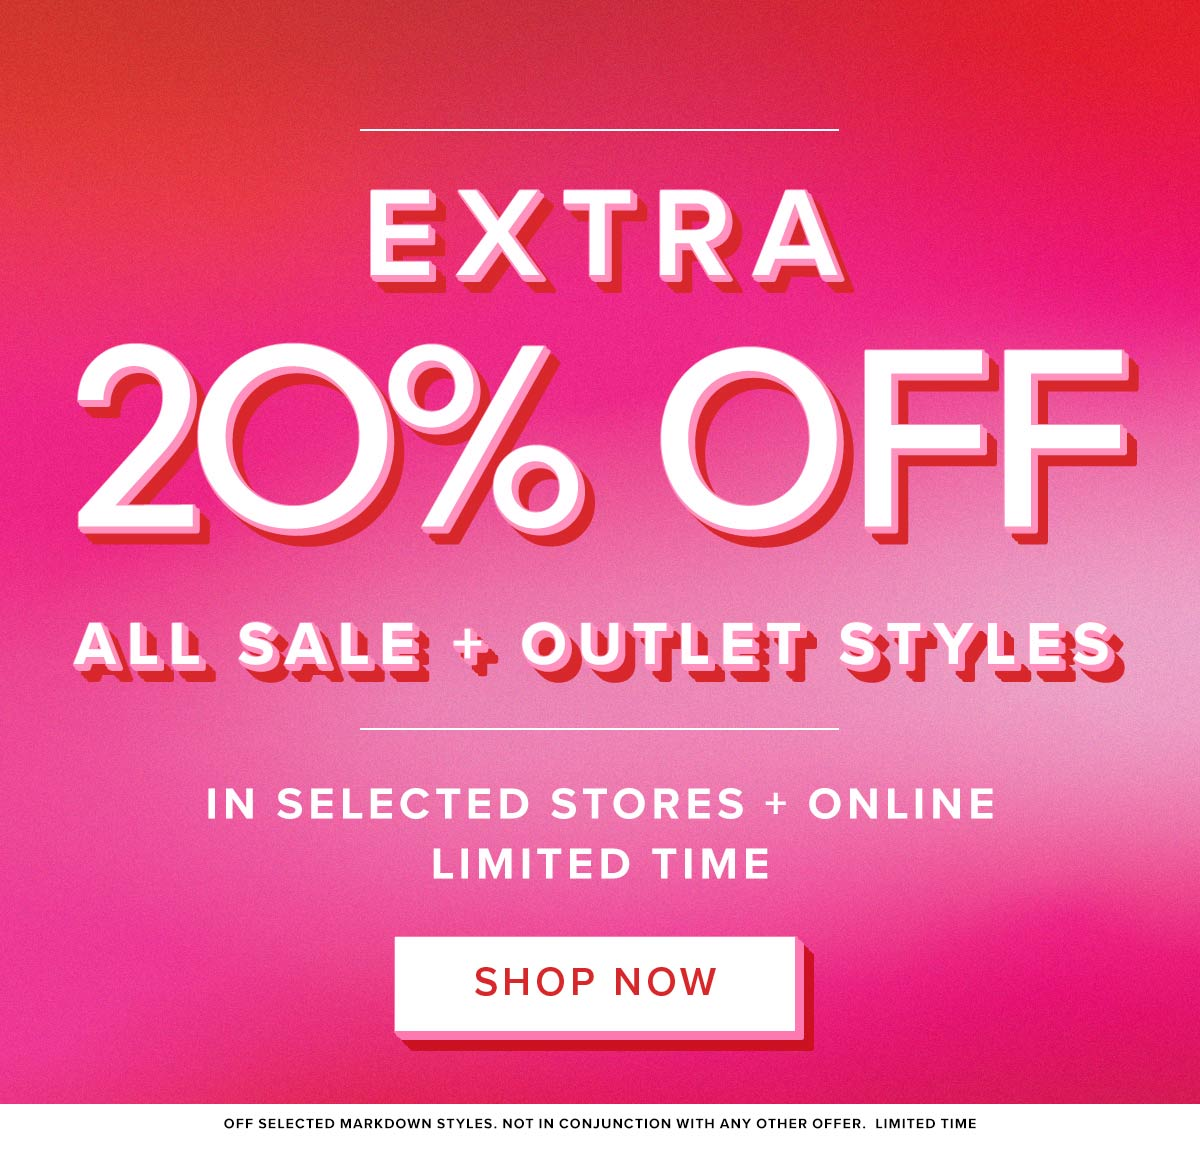 Take An Extra 20% Off Markdown Styles